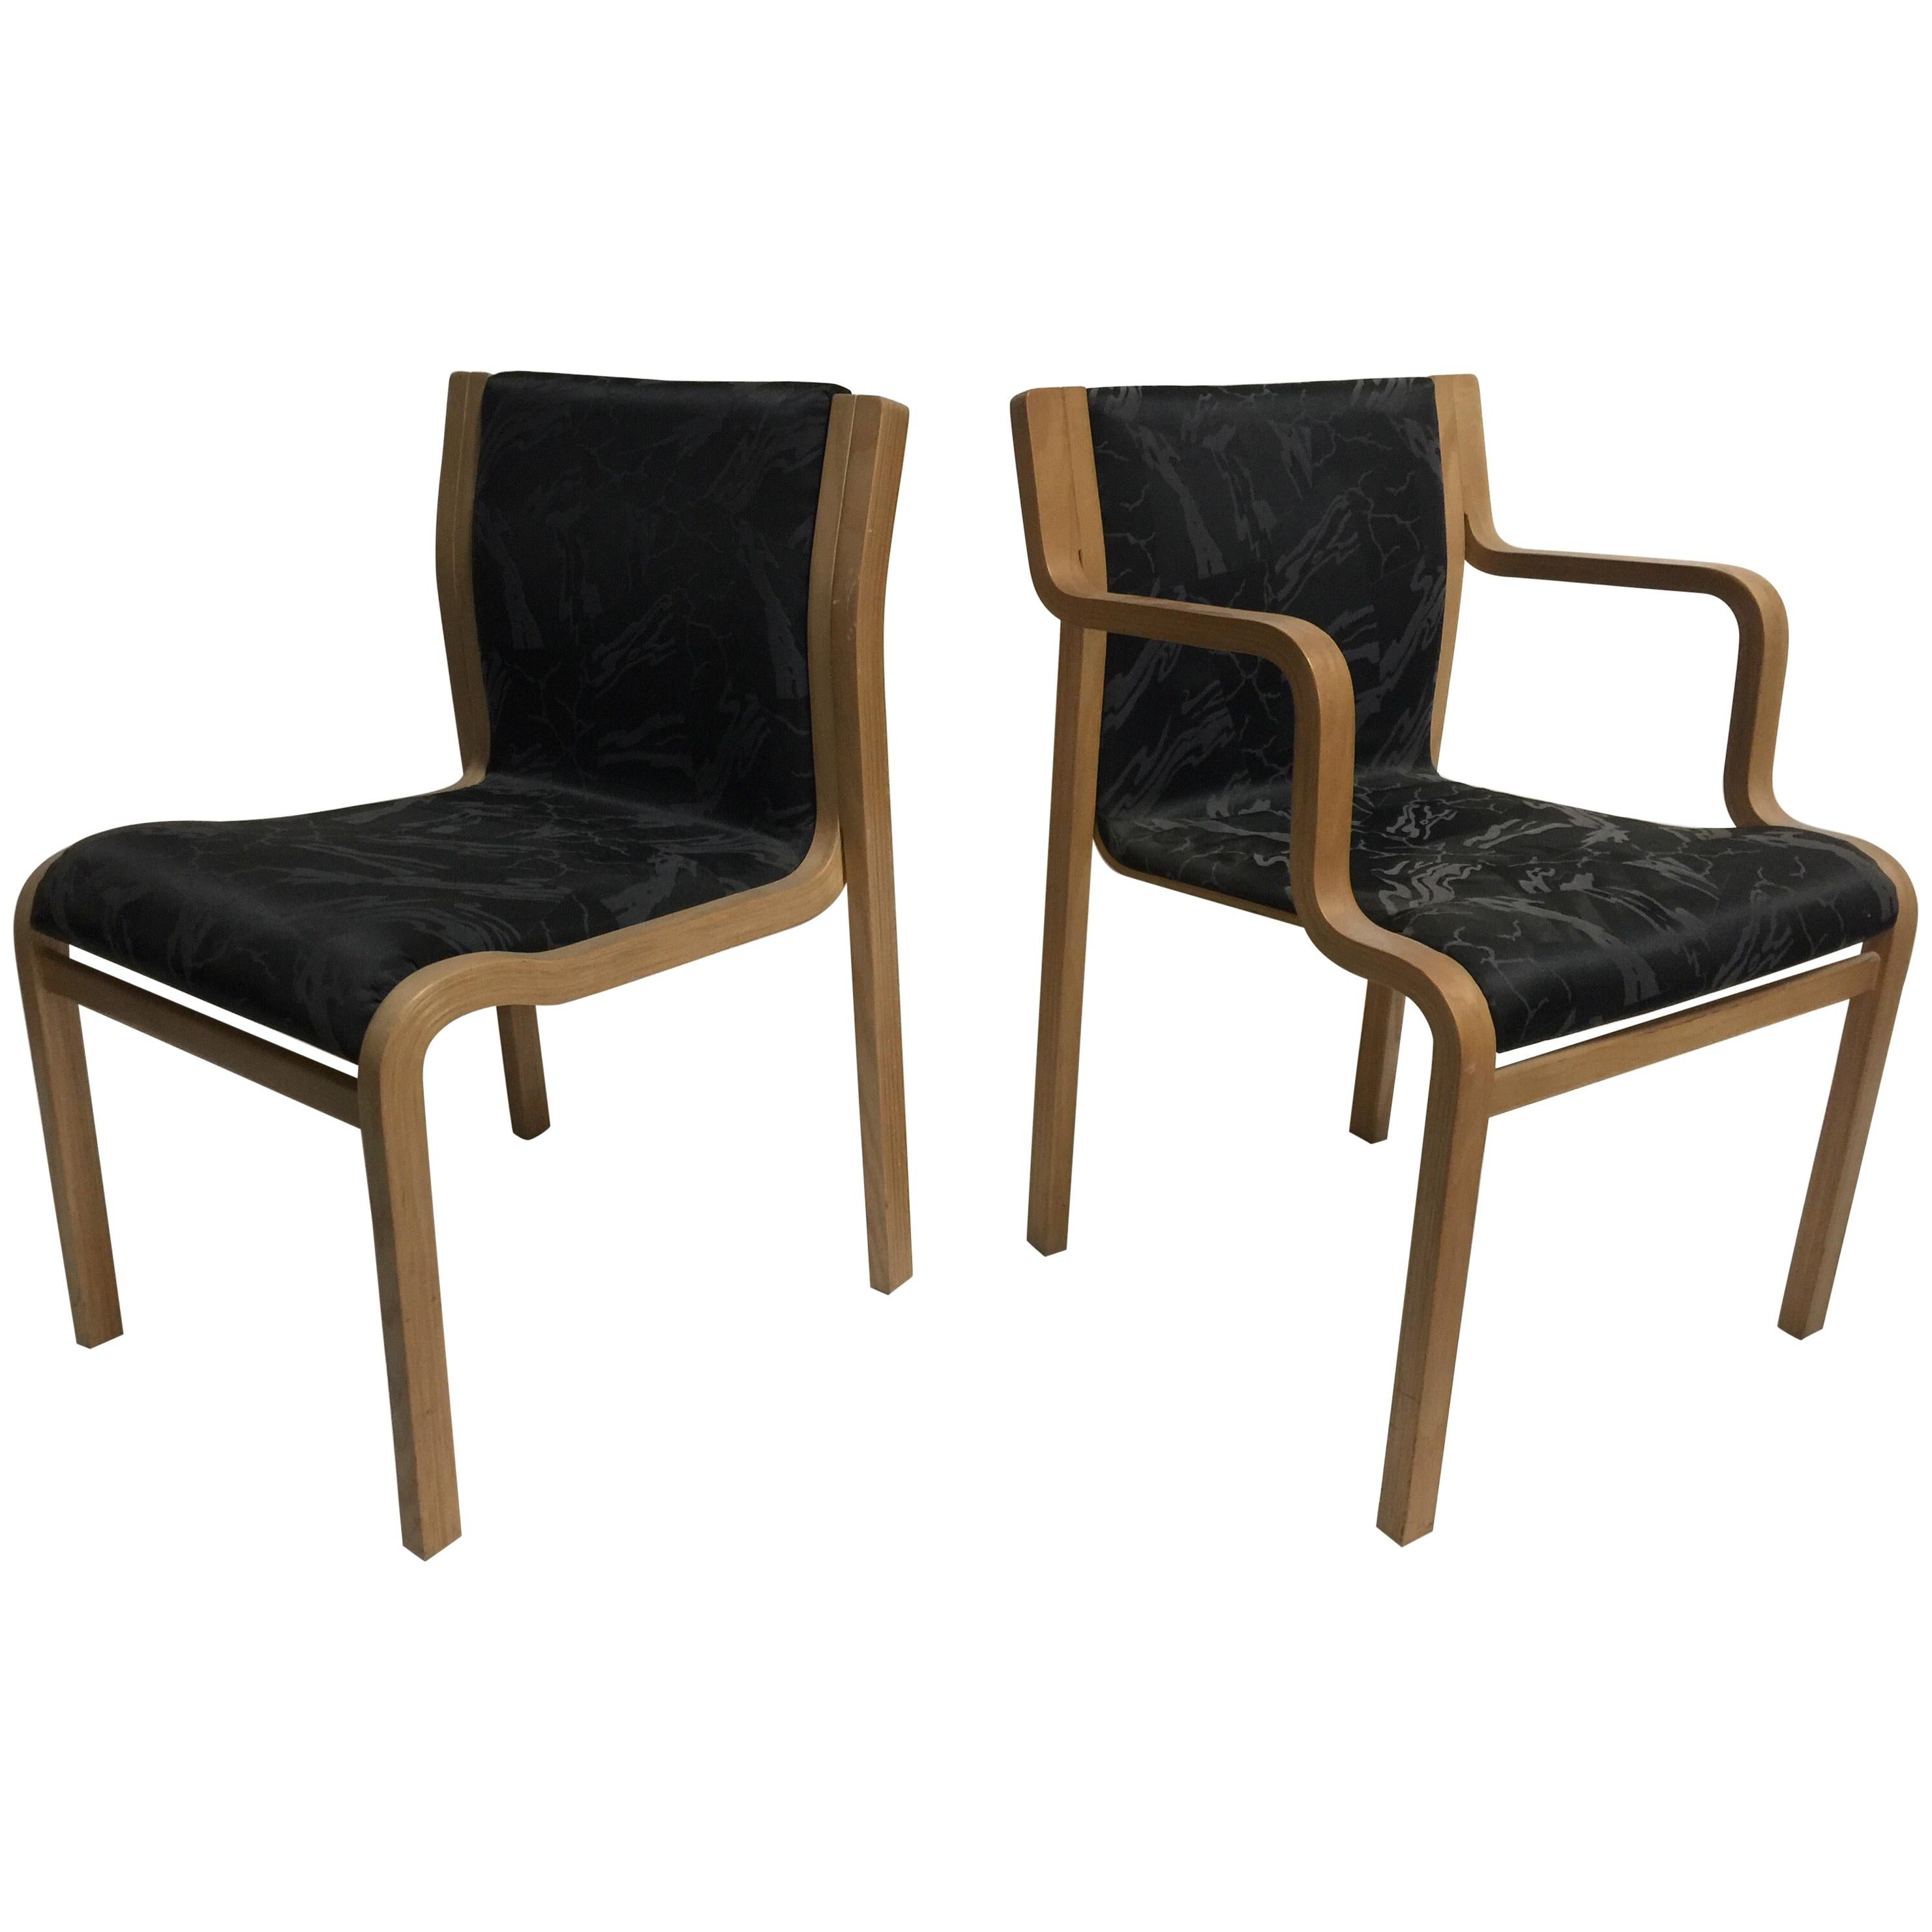 Set of 6 Bentwood Chairs by Bill Stephen for Knoll, 4 Sides, 2 Arms